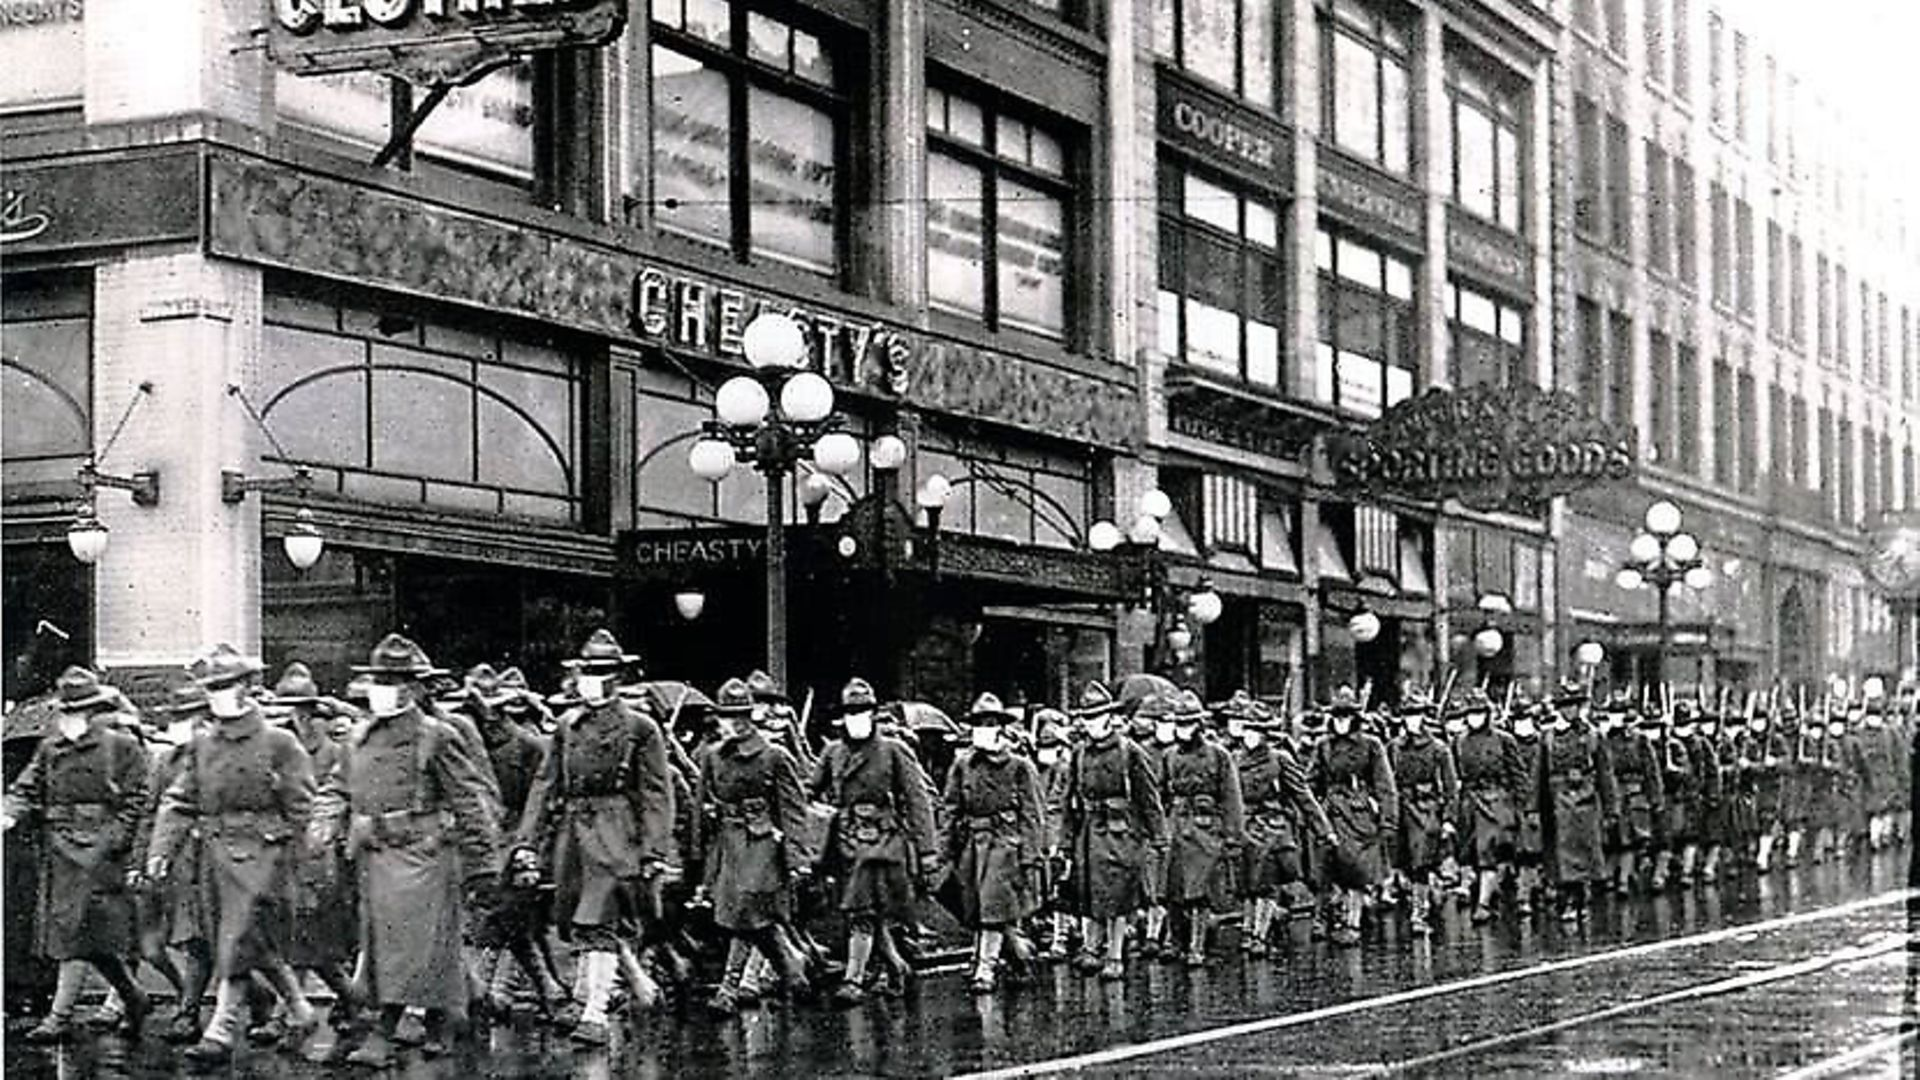 The 39th Regiment, wearing masks to protect soldiers from the flu virus, marches through the streets of Seattle in December 1918 Photo: ©Atlas Archive / The Image Works. - Credit: Archant